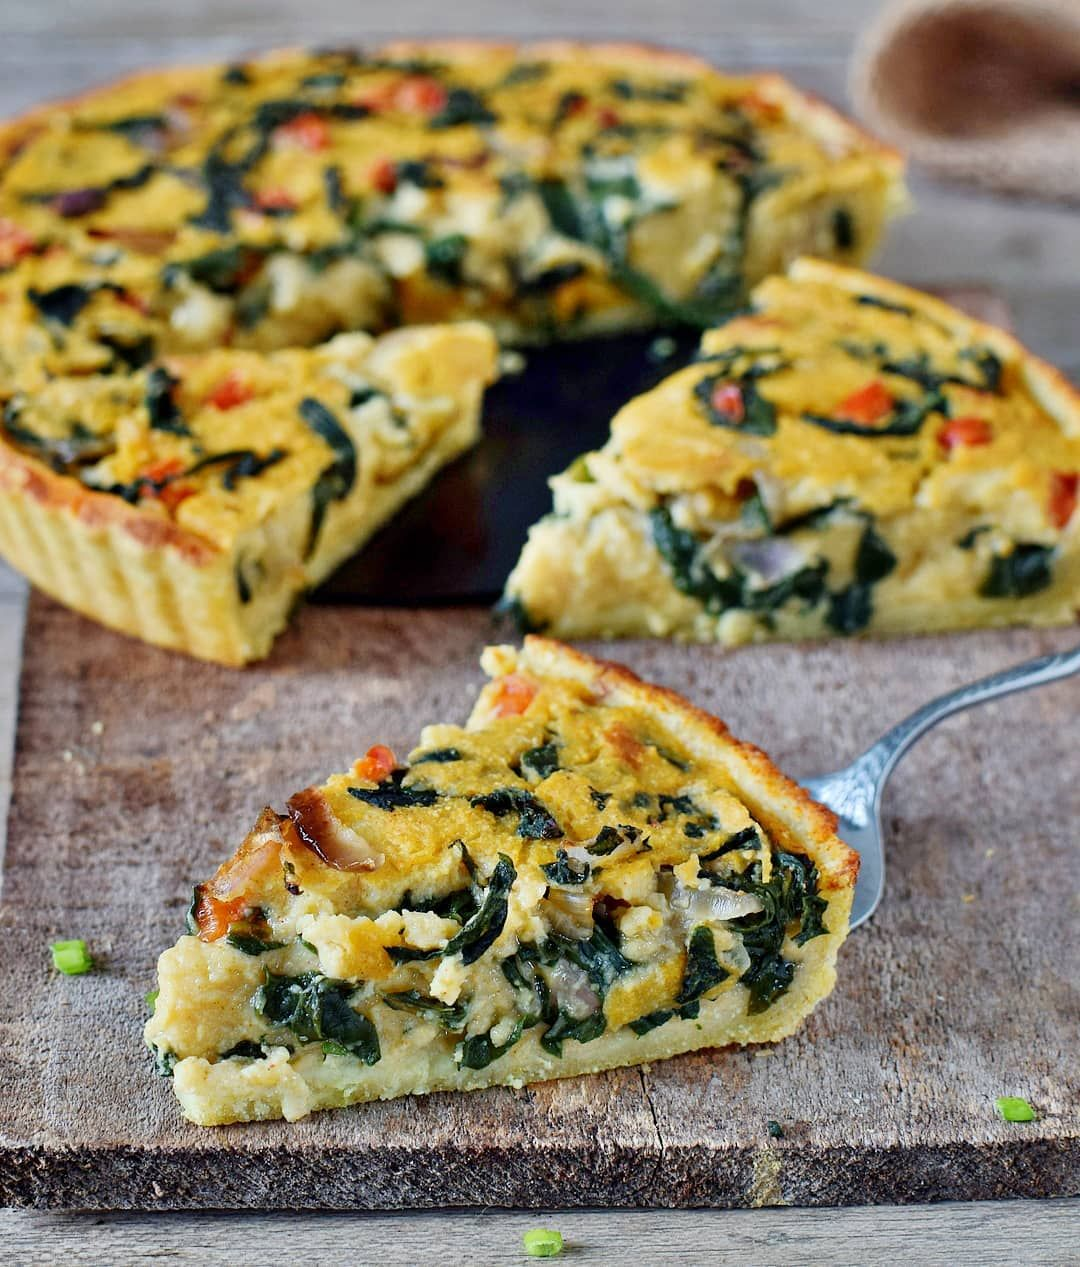 Vegan Quiche The Recipe Is Vegan Gluten Free Hearty Filling Delicious And Perfect For Breakfast Snack Lunch Or Quiche Recipes Vegan Quiche Savory Vegan